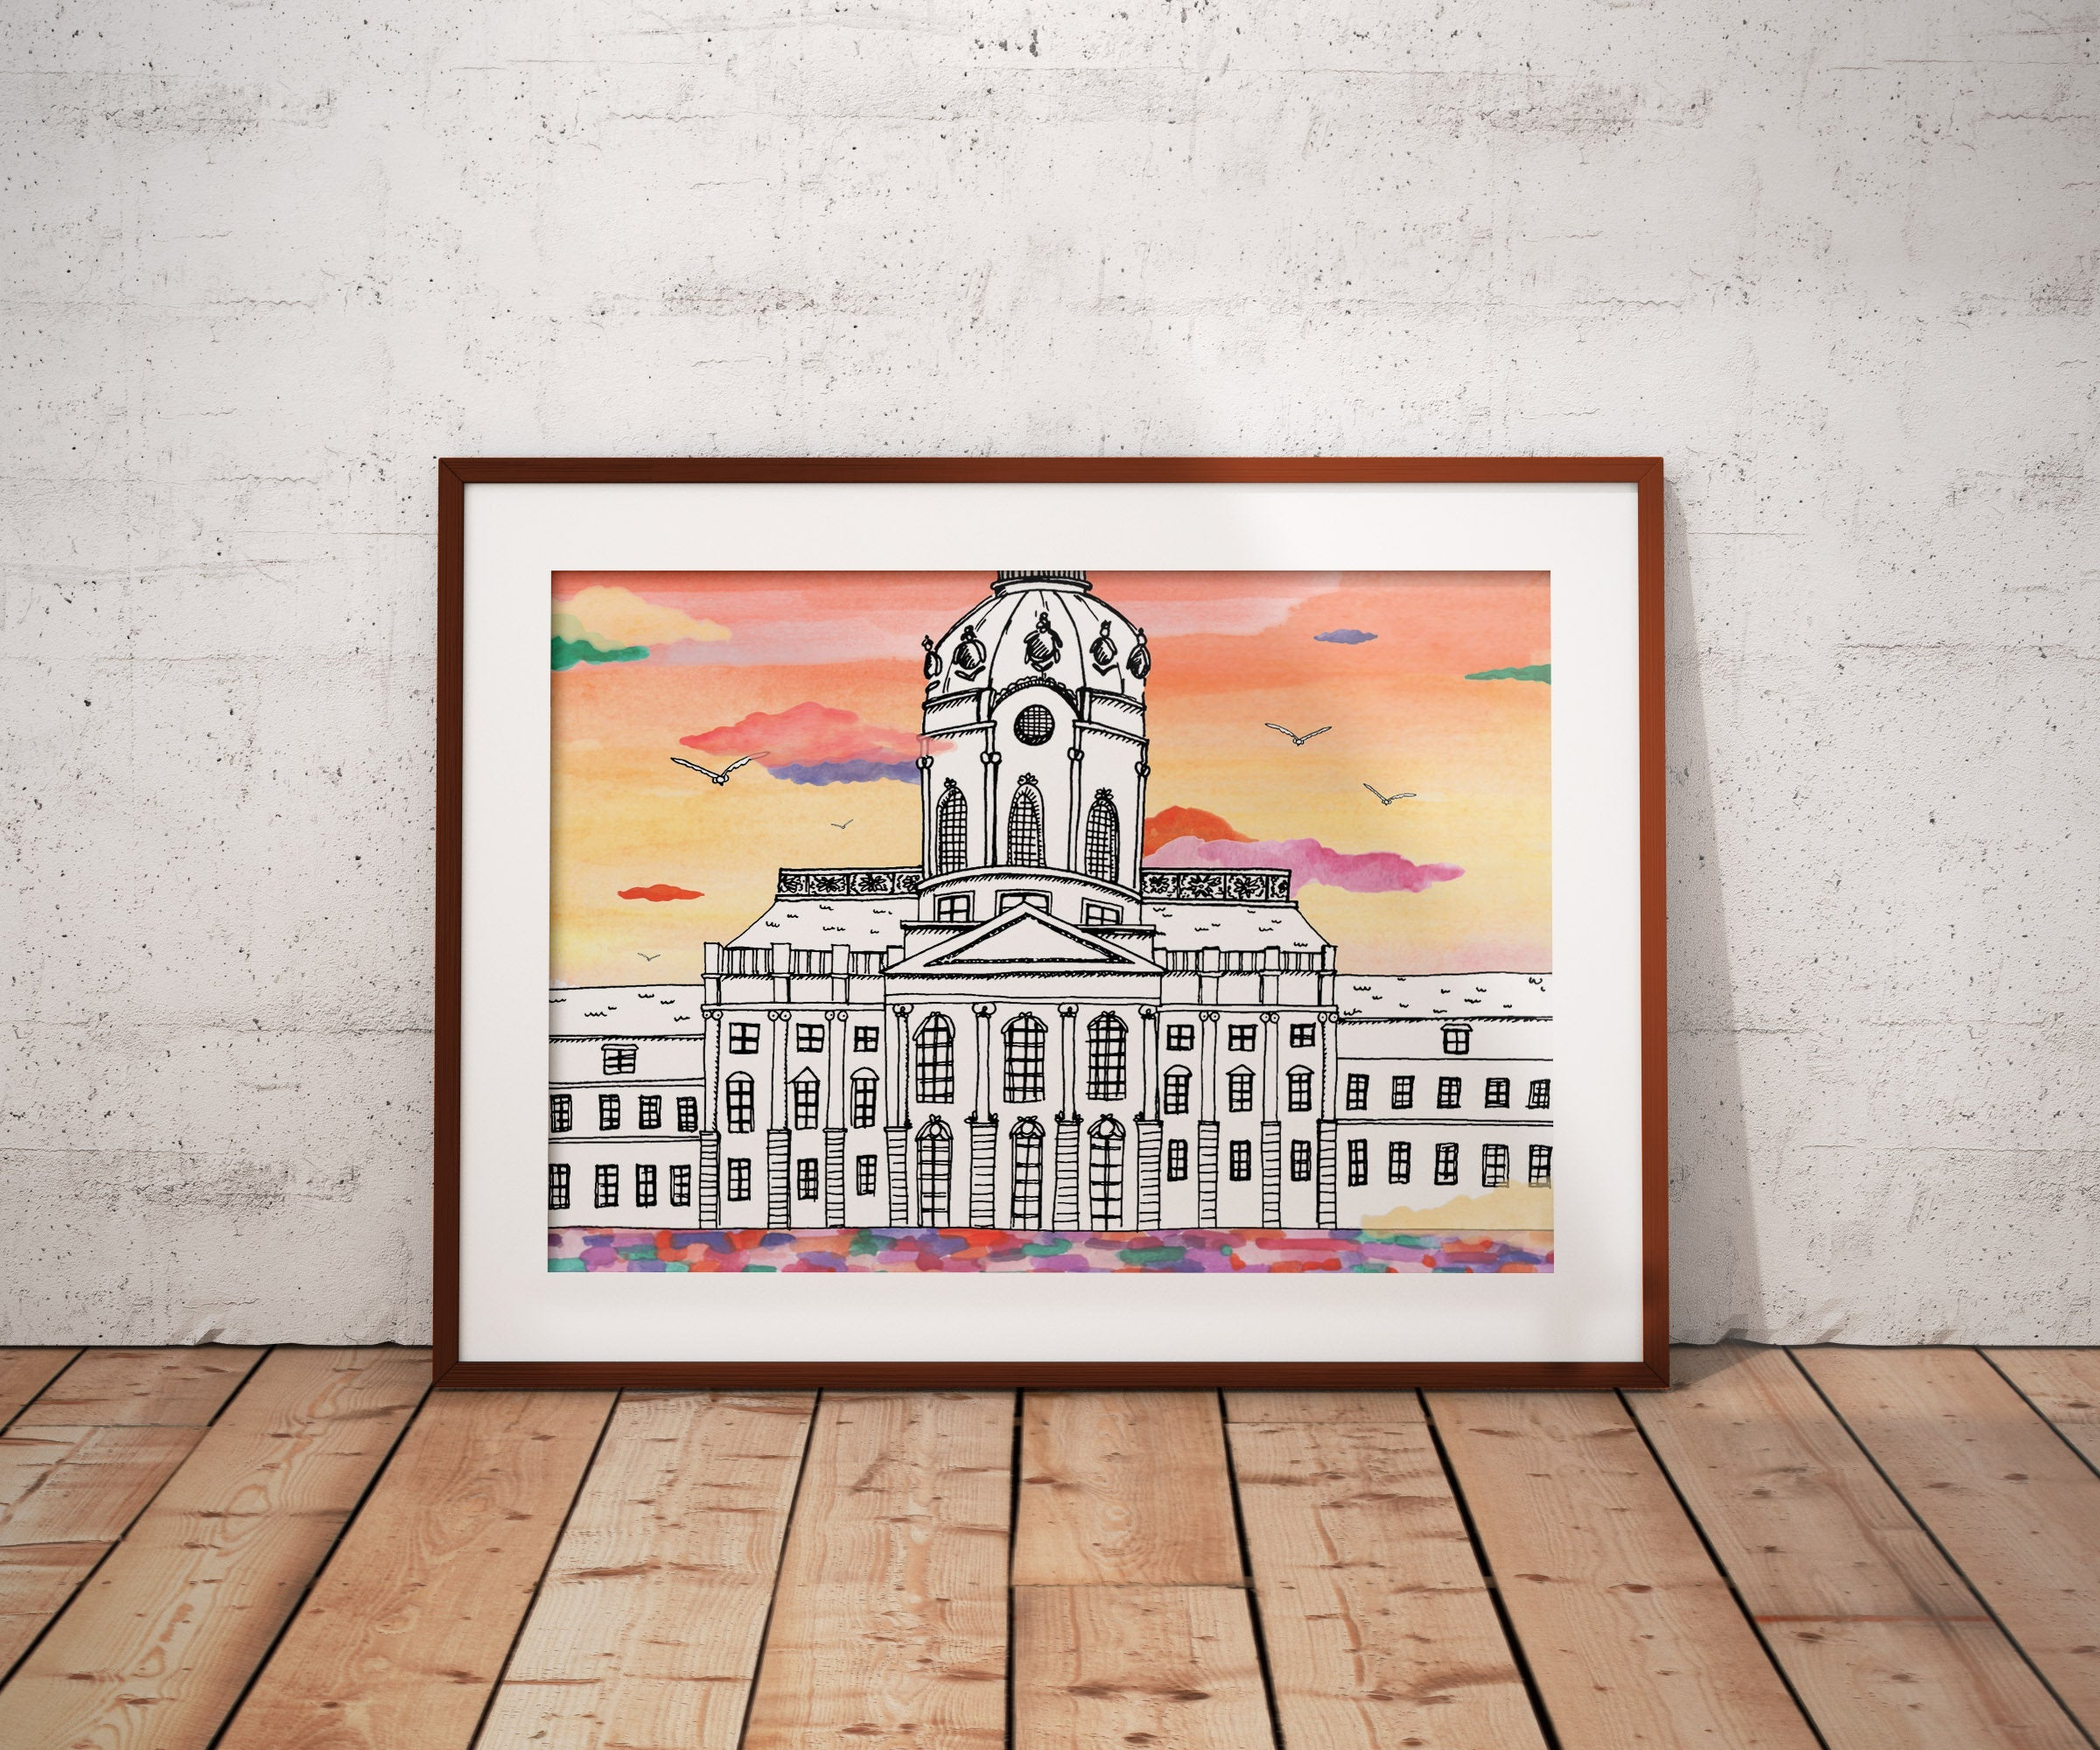 Berlin Schloss Charlottenburg  - Berlin - Poster A4/ A3/ A2 - Architecture, Art.